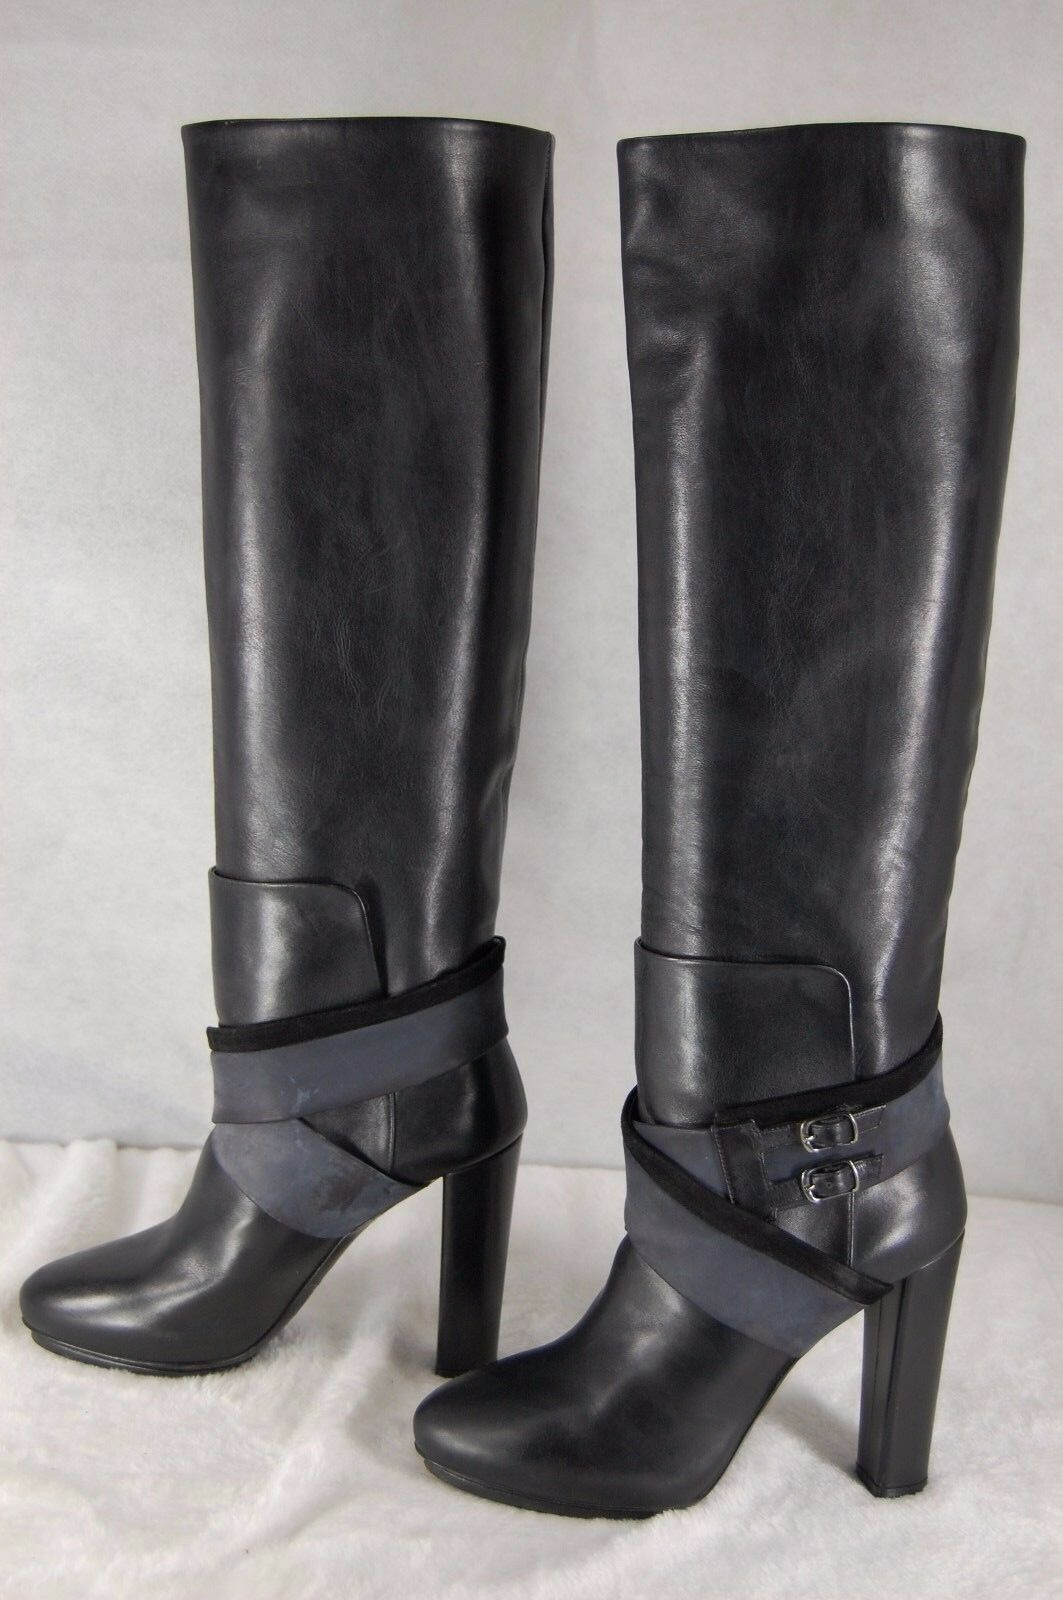 BALENCIAGA  BLACK LEATHER RIDING BIKER HIGH HEEL  BOOTS EU 35.5 US 5.5